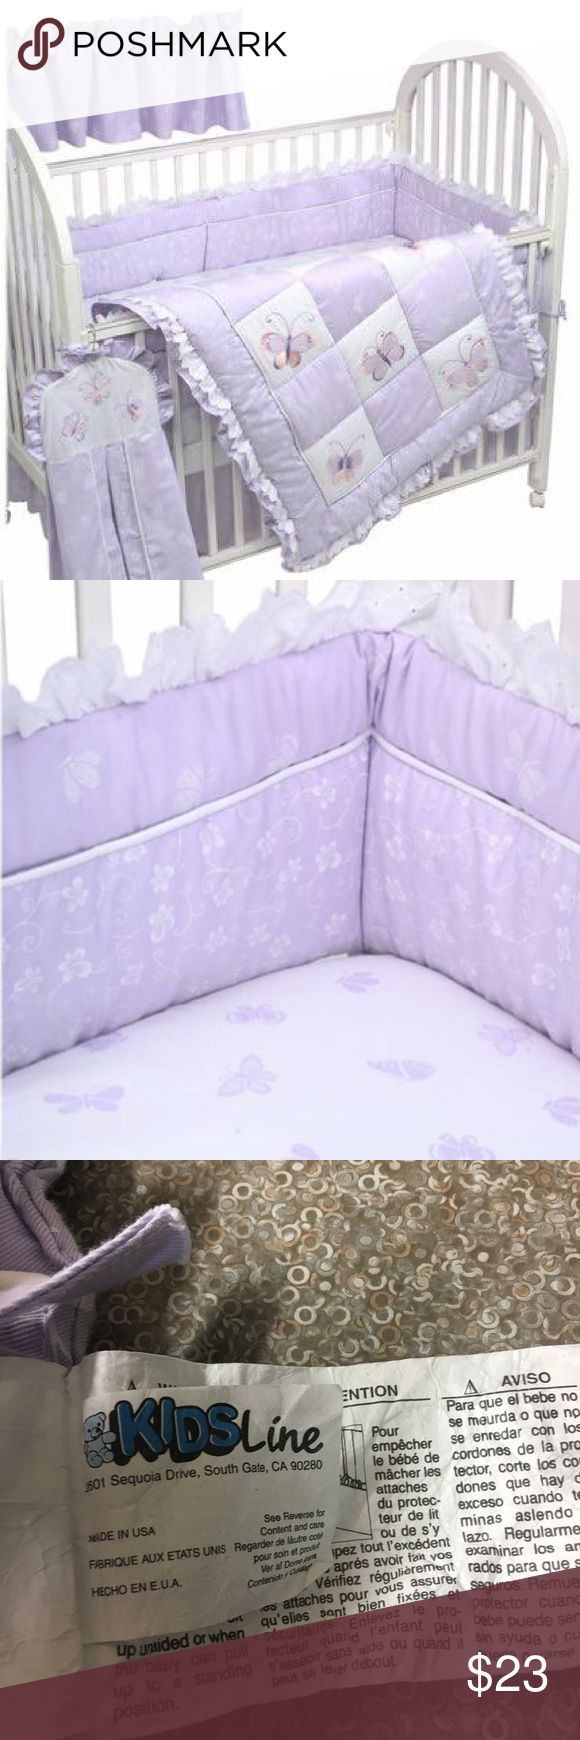 Kids Line Lavender Butterfly Baby Crib Bumper Kids Line Lavender Butterfly Baby Crib Bumper   In great condition has tiny spot on it but I think it could be removed with a stain remover. Small stain is on the back so it's not visible.  Crib Bumper for sale only.   Retail: $59 Other